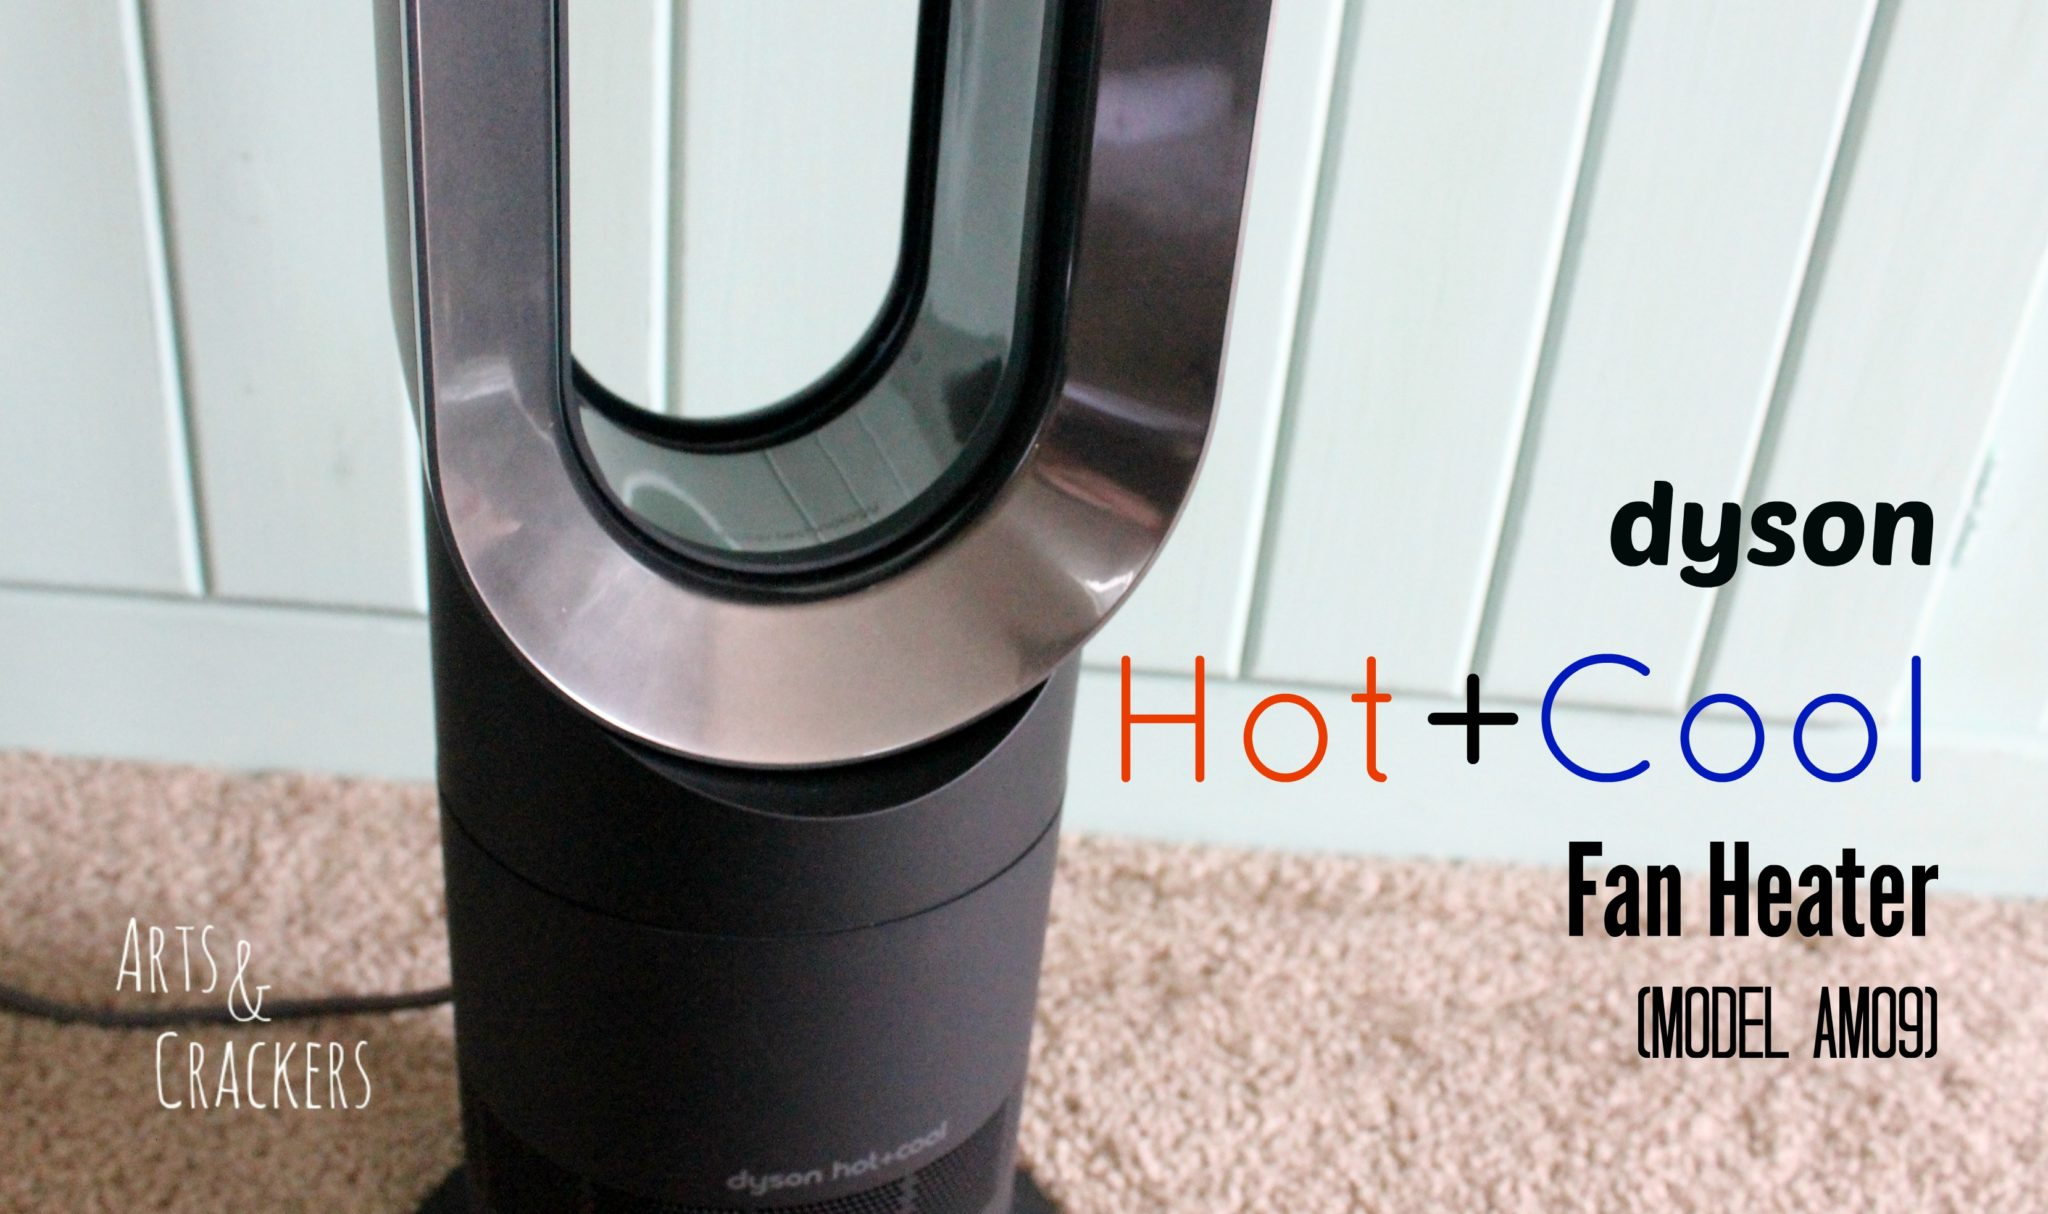 dyson hot and cool fan heater arts crackers. Black Bedroom Furniture Sets. Home Design Ideas